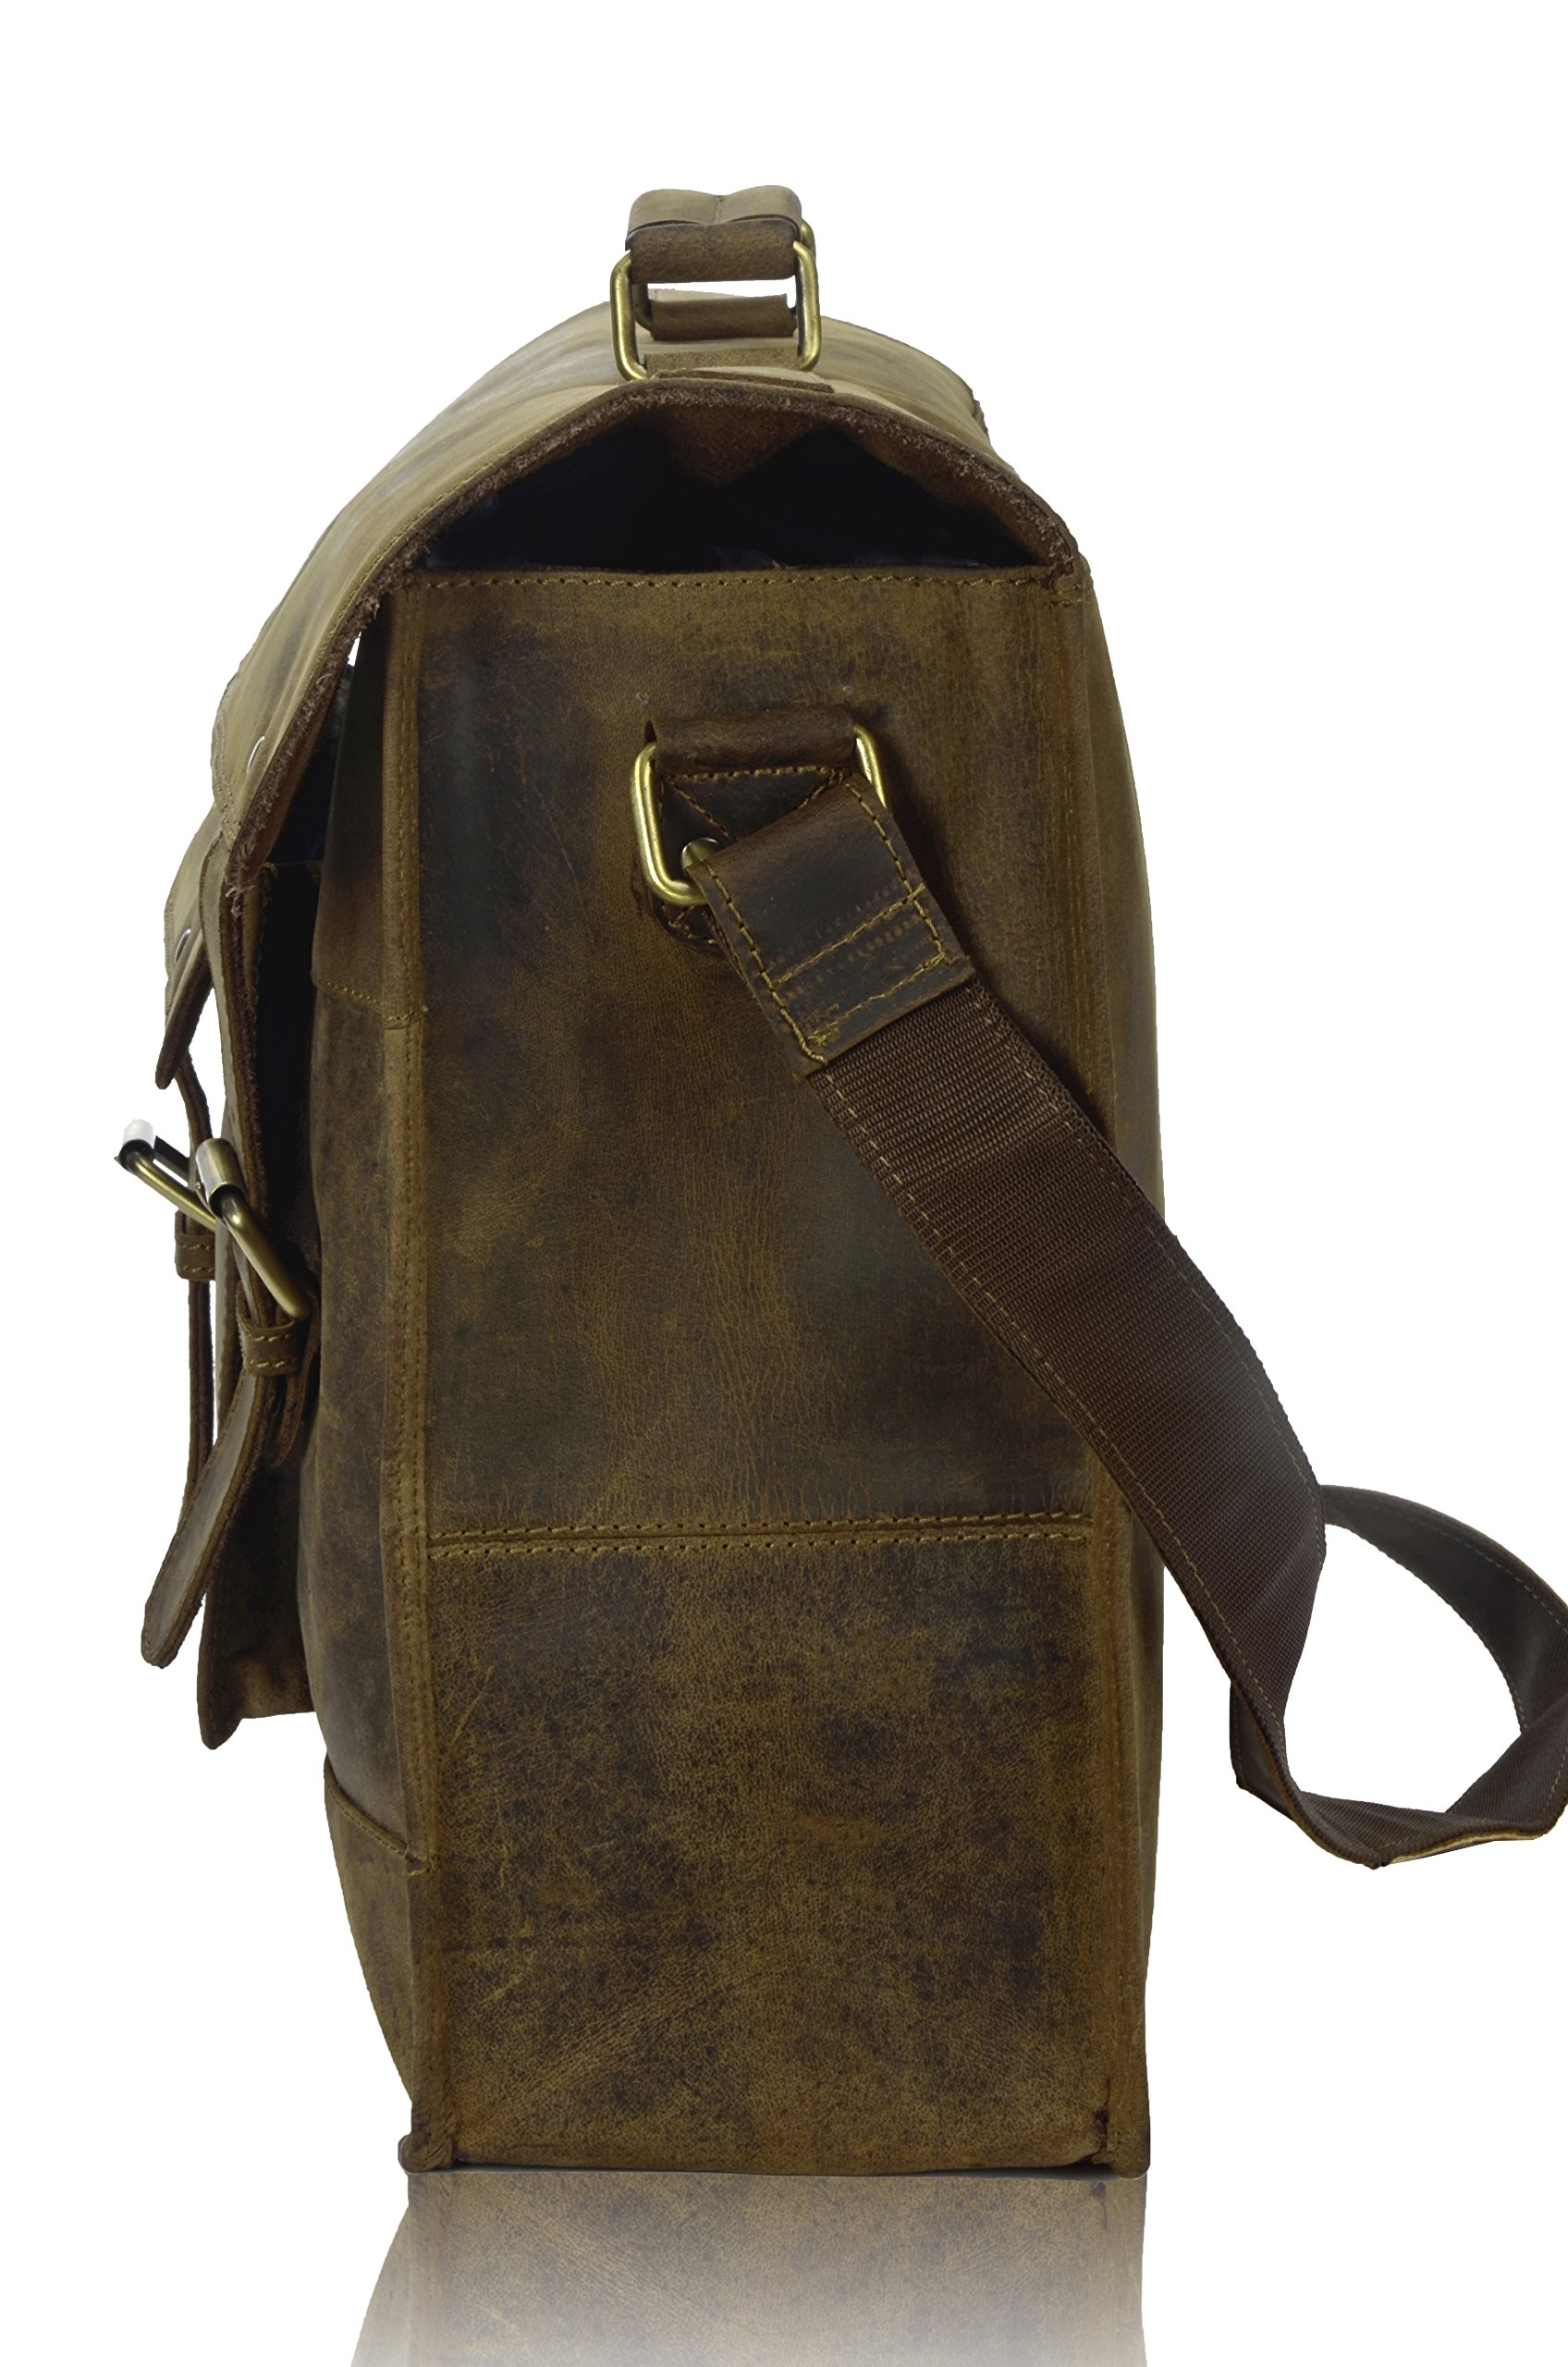 TONY'S BAGS - 18 inch Laptop bag - College Bag, Office Bag Laptop Bag Briefcase in Vintage Leather by Tony bags (Image #3)